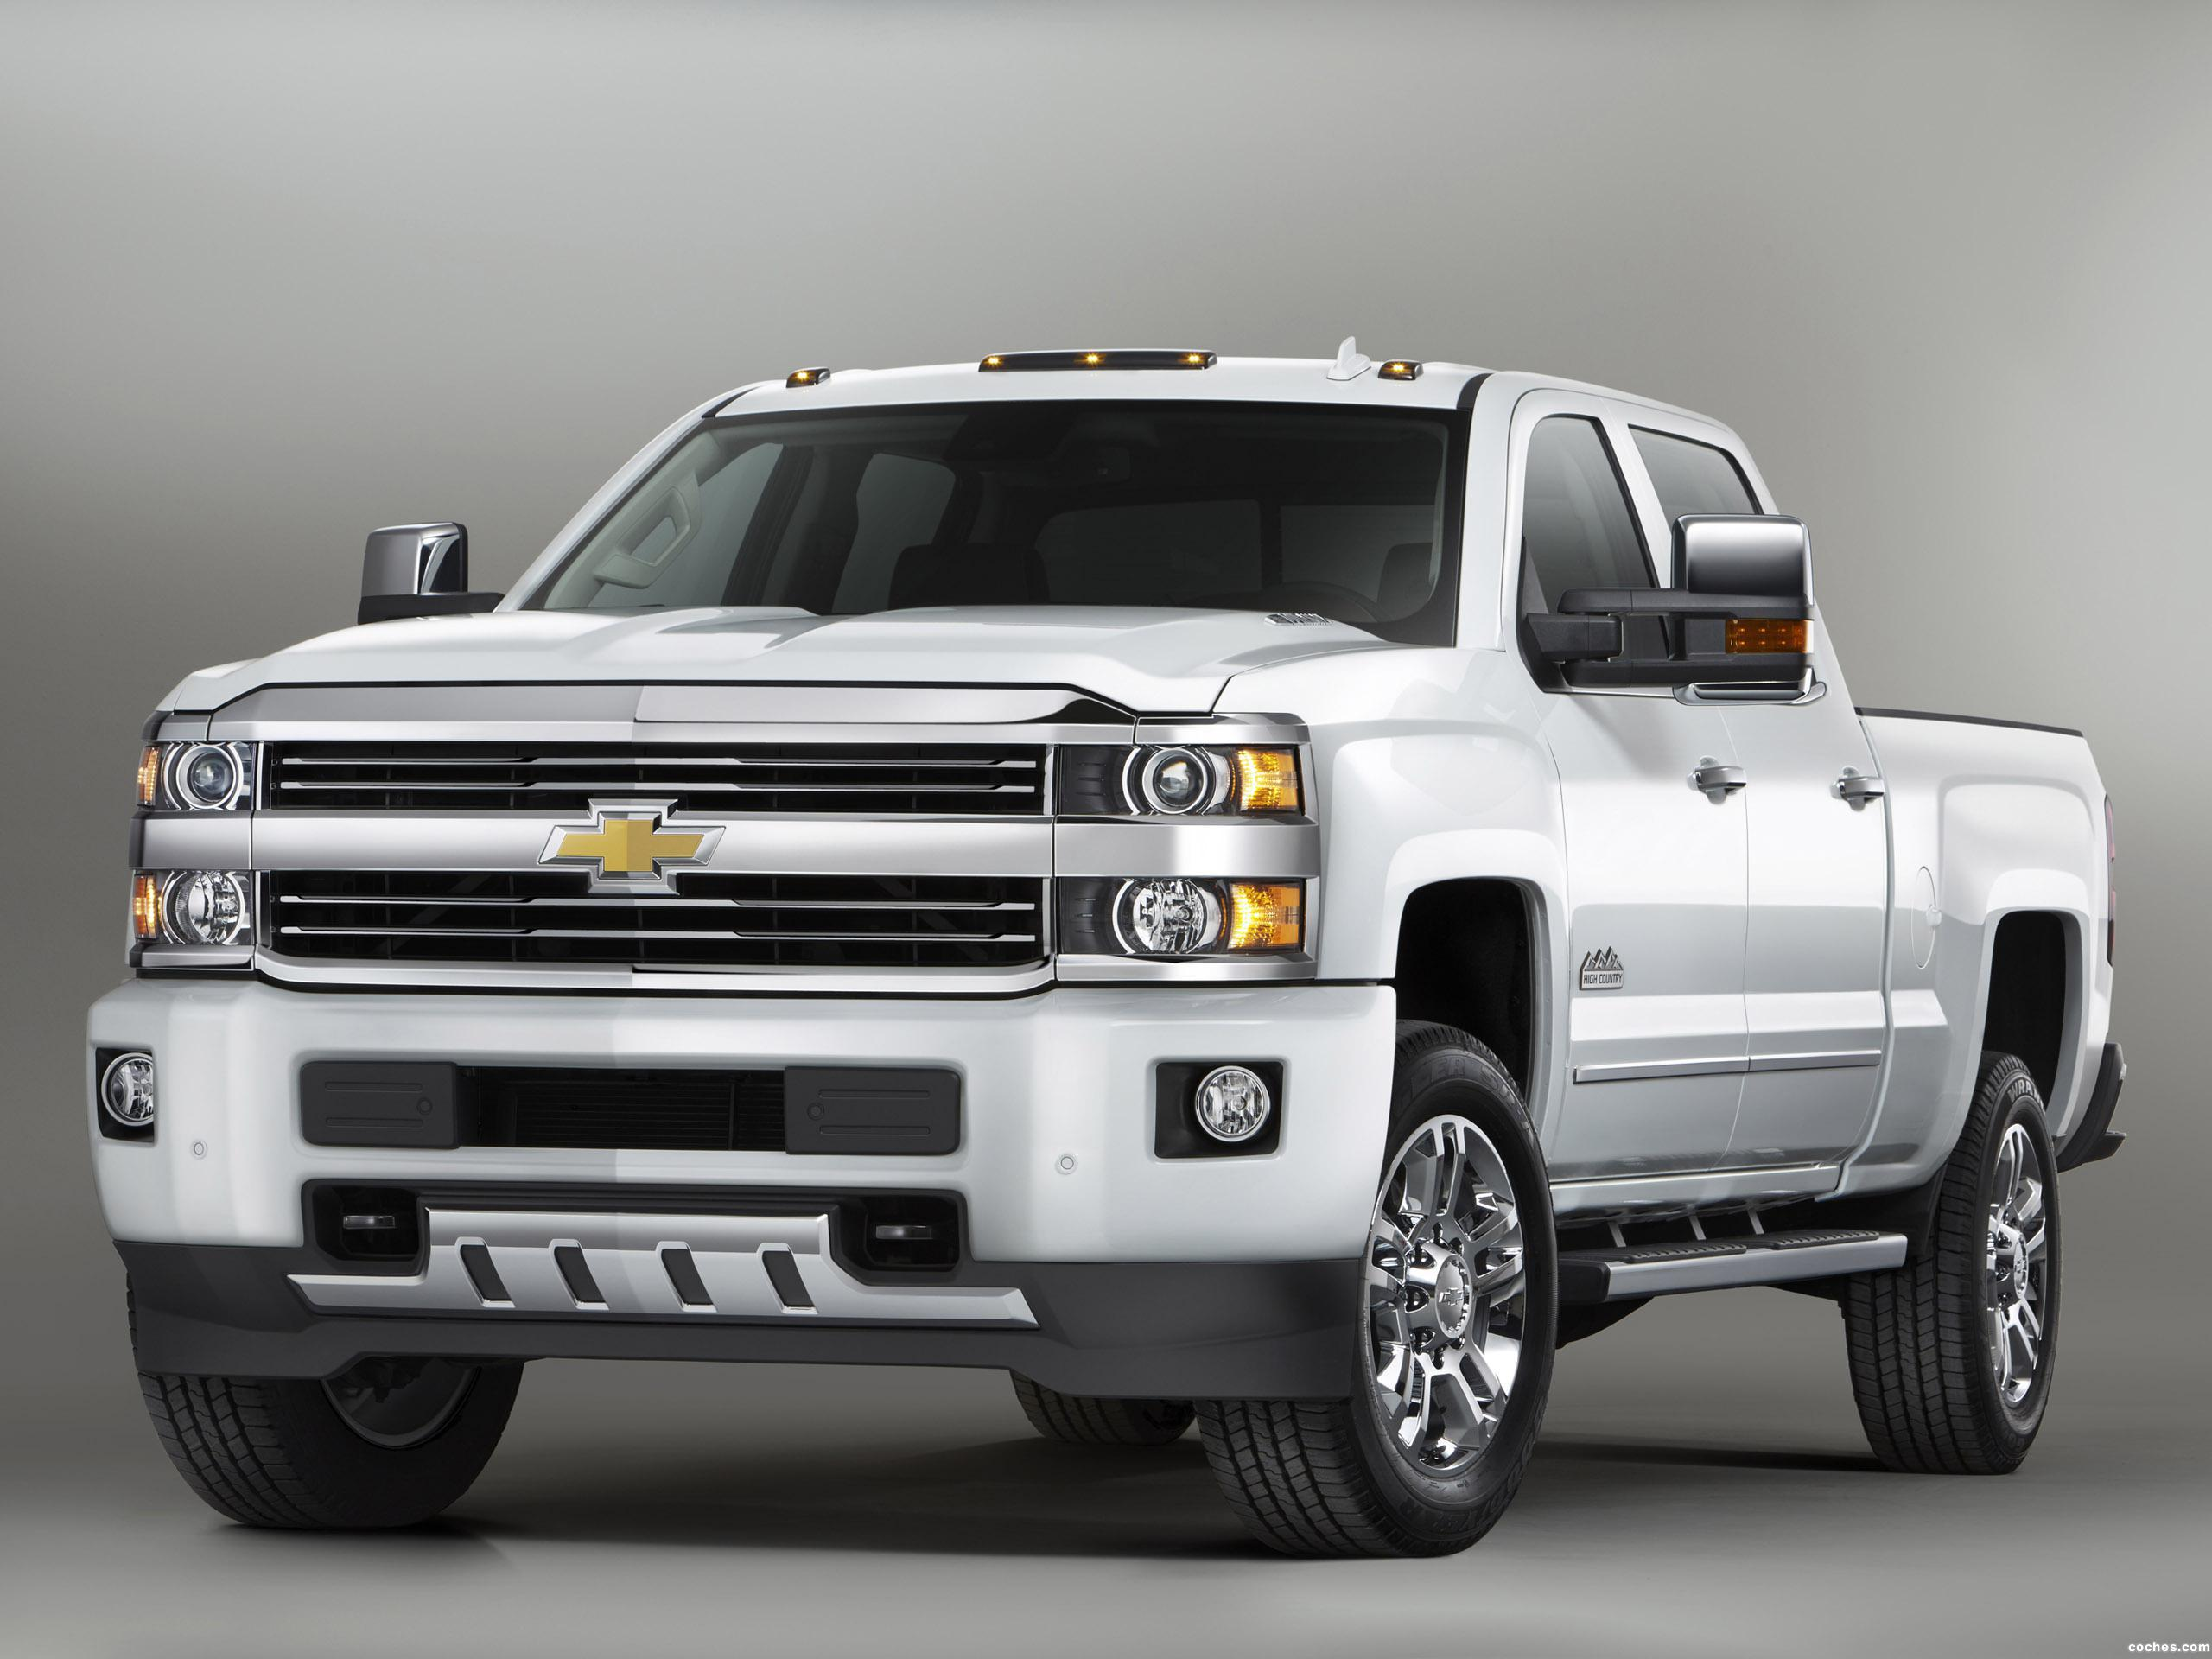 Foto 0 de Chevrolet Silverado 2500 HD High Country Crew Cab 2014